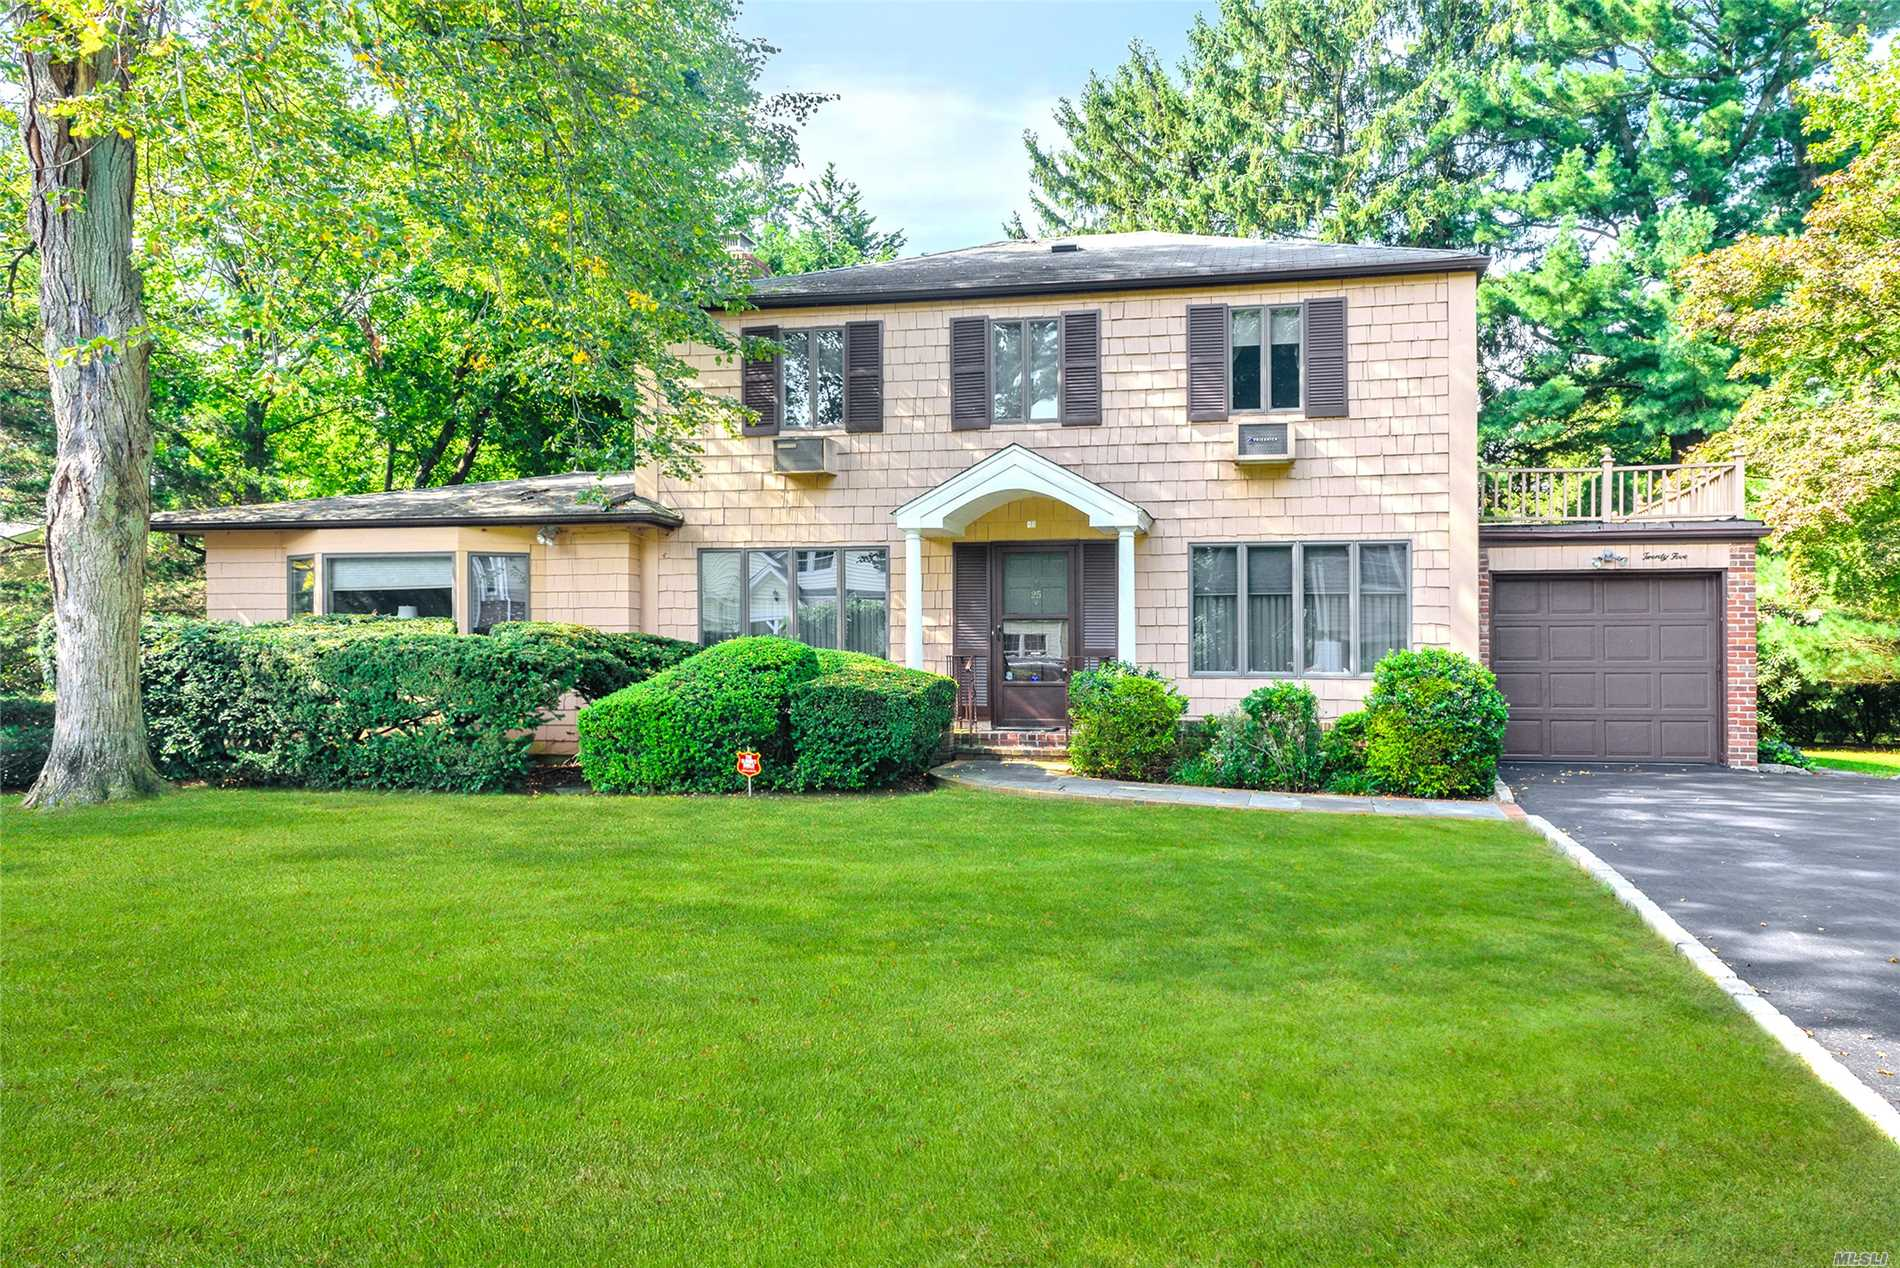 Welcome To This Wonderful Center Hall Colonial Perfectly Situated In The Community Of Strathmore Featuring Formal Lr W/ Fireplace, Formal Dining Room, Eik And Large Den For Entertaining. All Of This And More Including The East Hills Park!